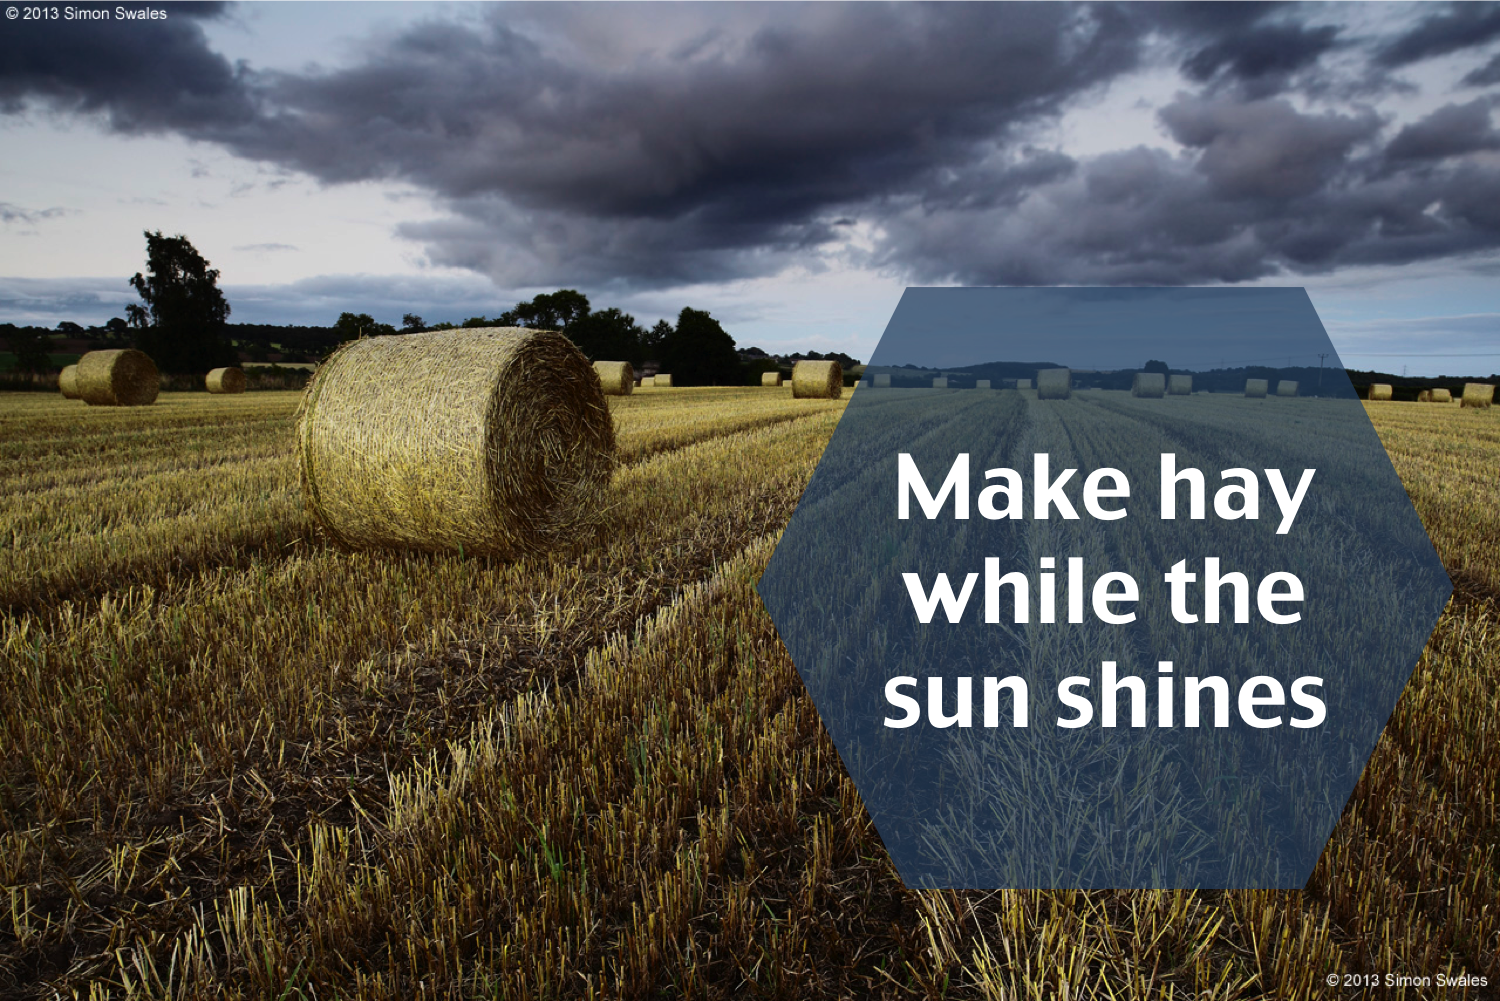 make hay while the sun shines essay The story goes that an ambitious young man was praying to god daily for months  intensely imploring the higher power to help him win the.